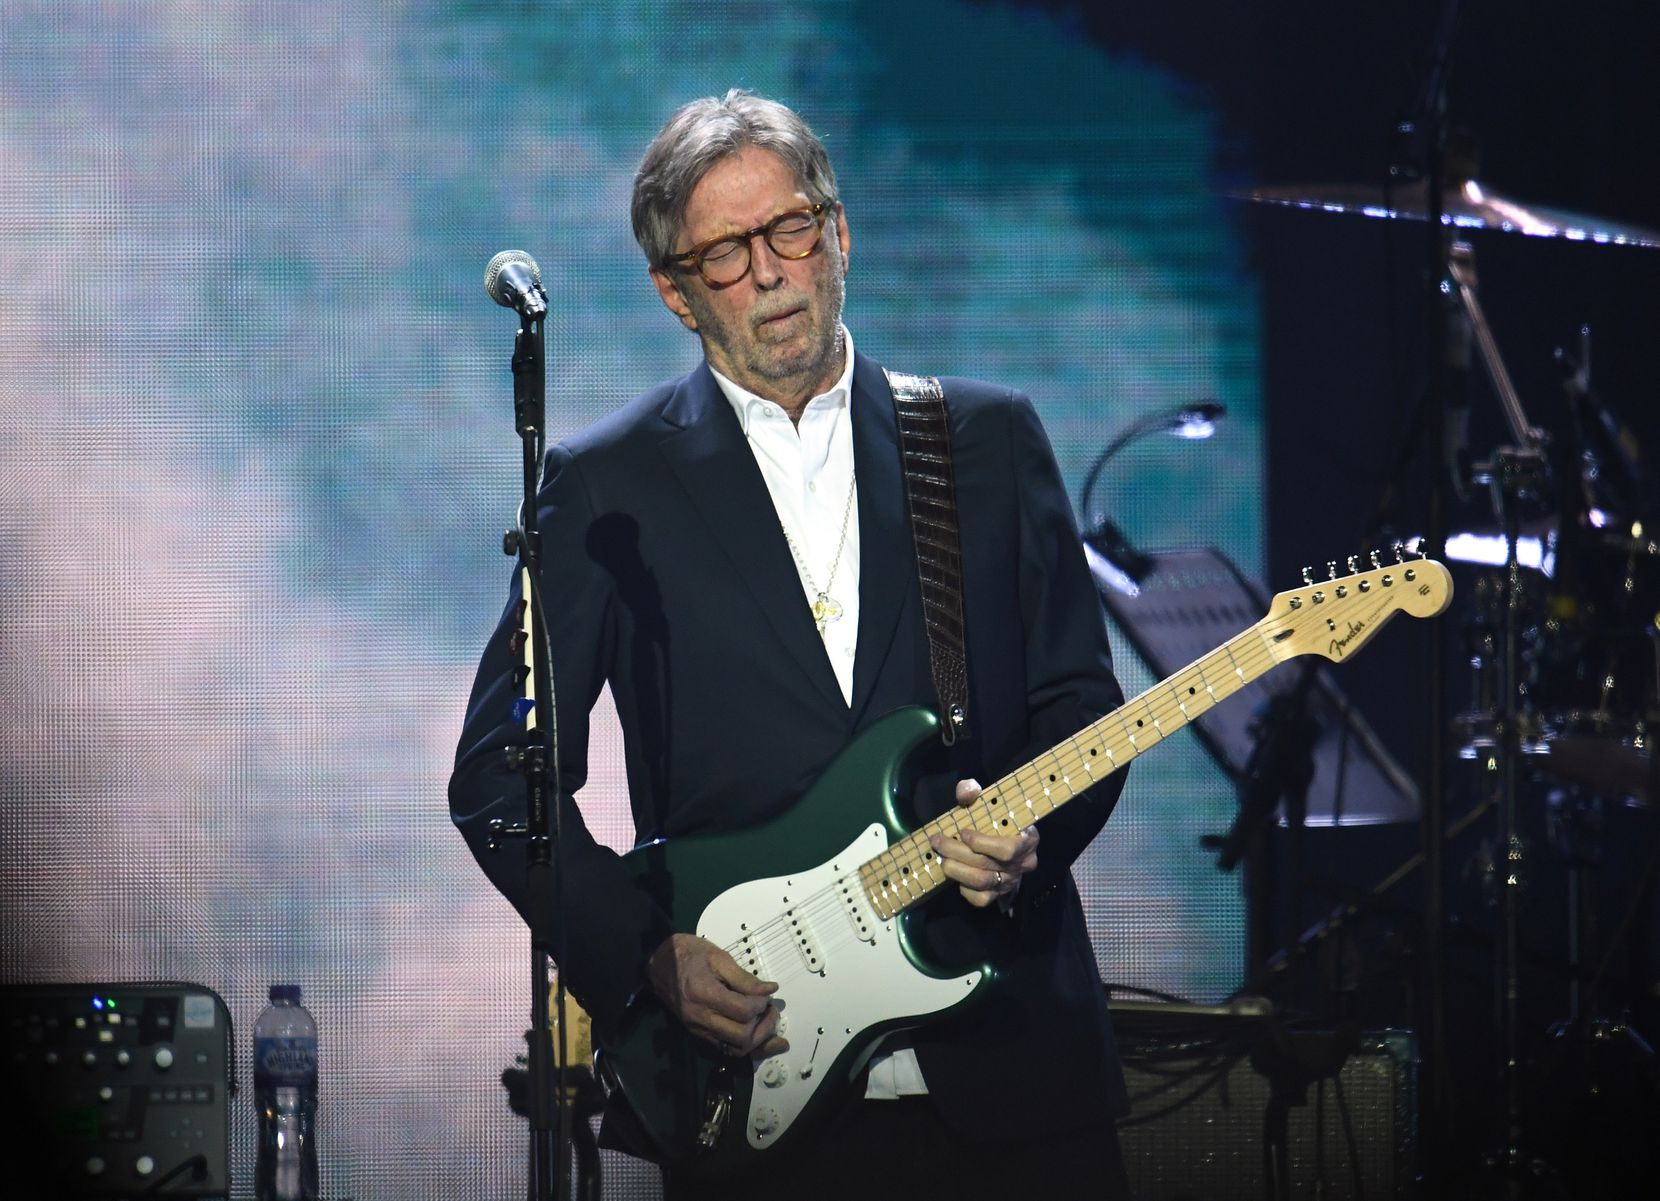 Eric Clapton performed at the O2 Arena in London, England on March 3, 2020.